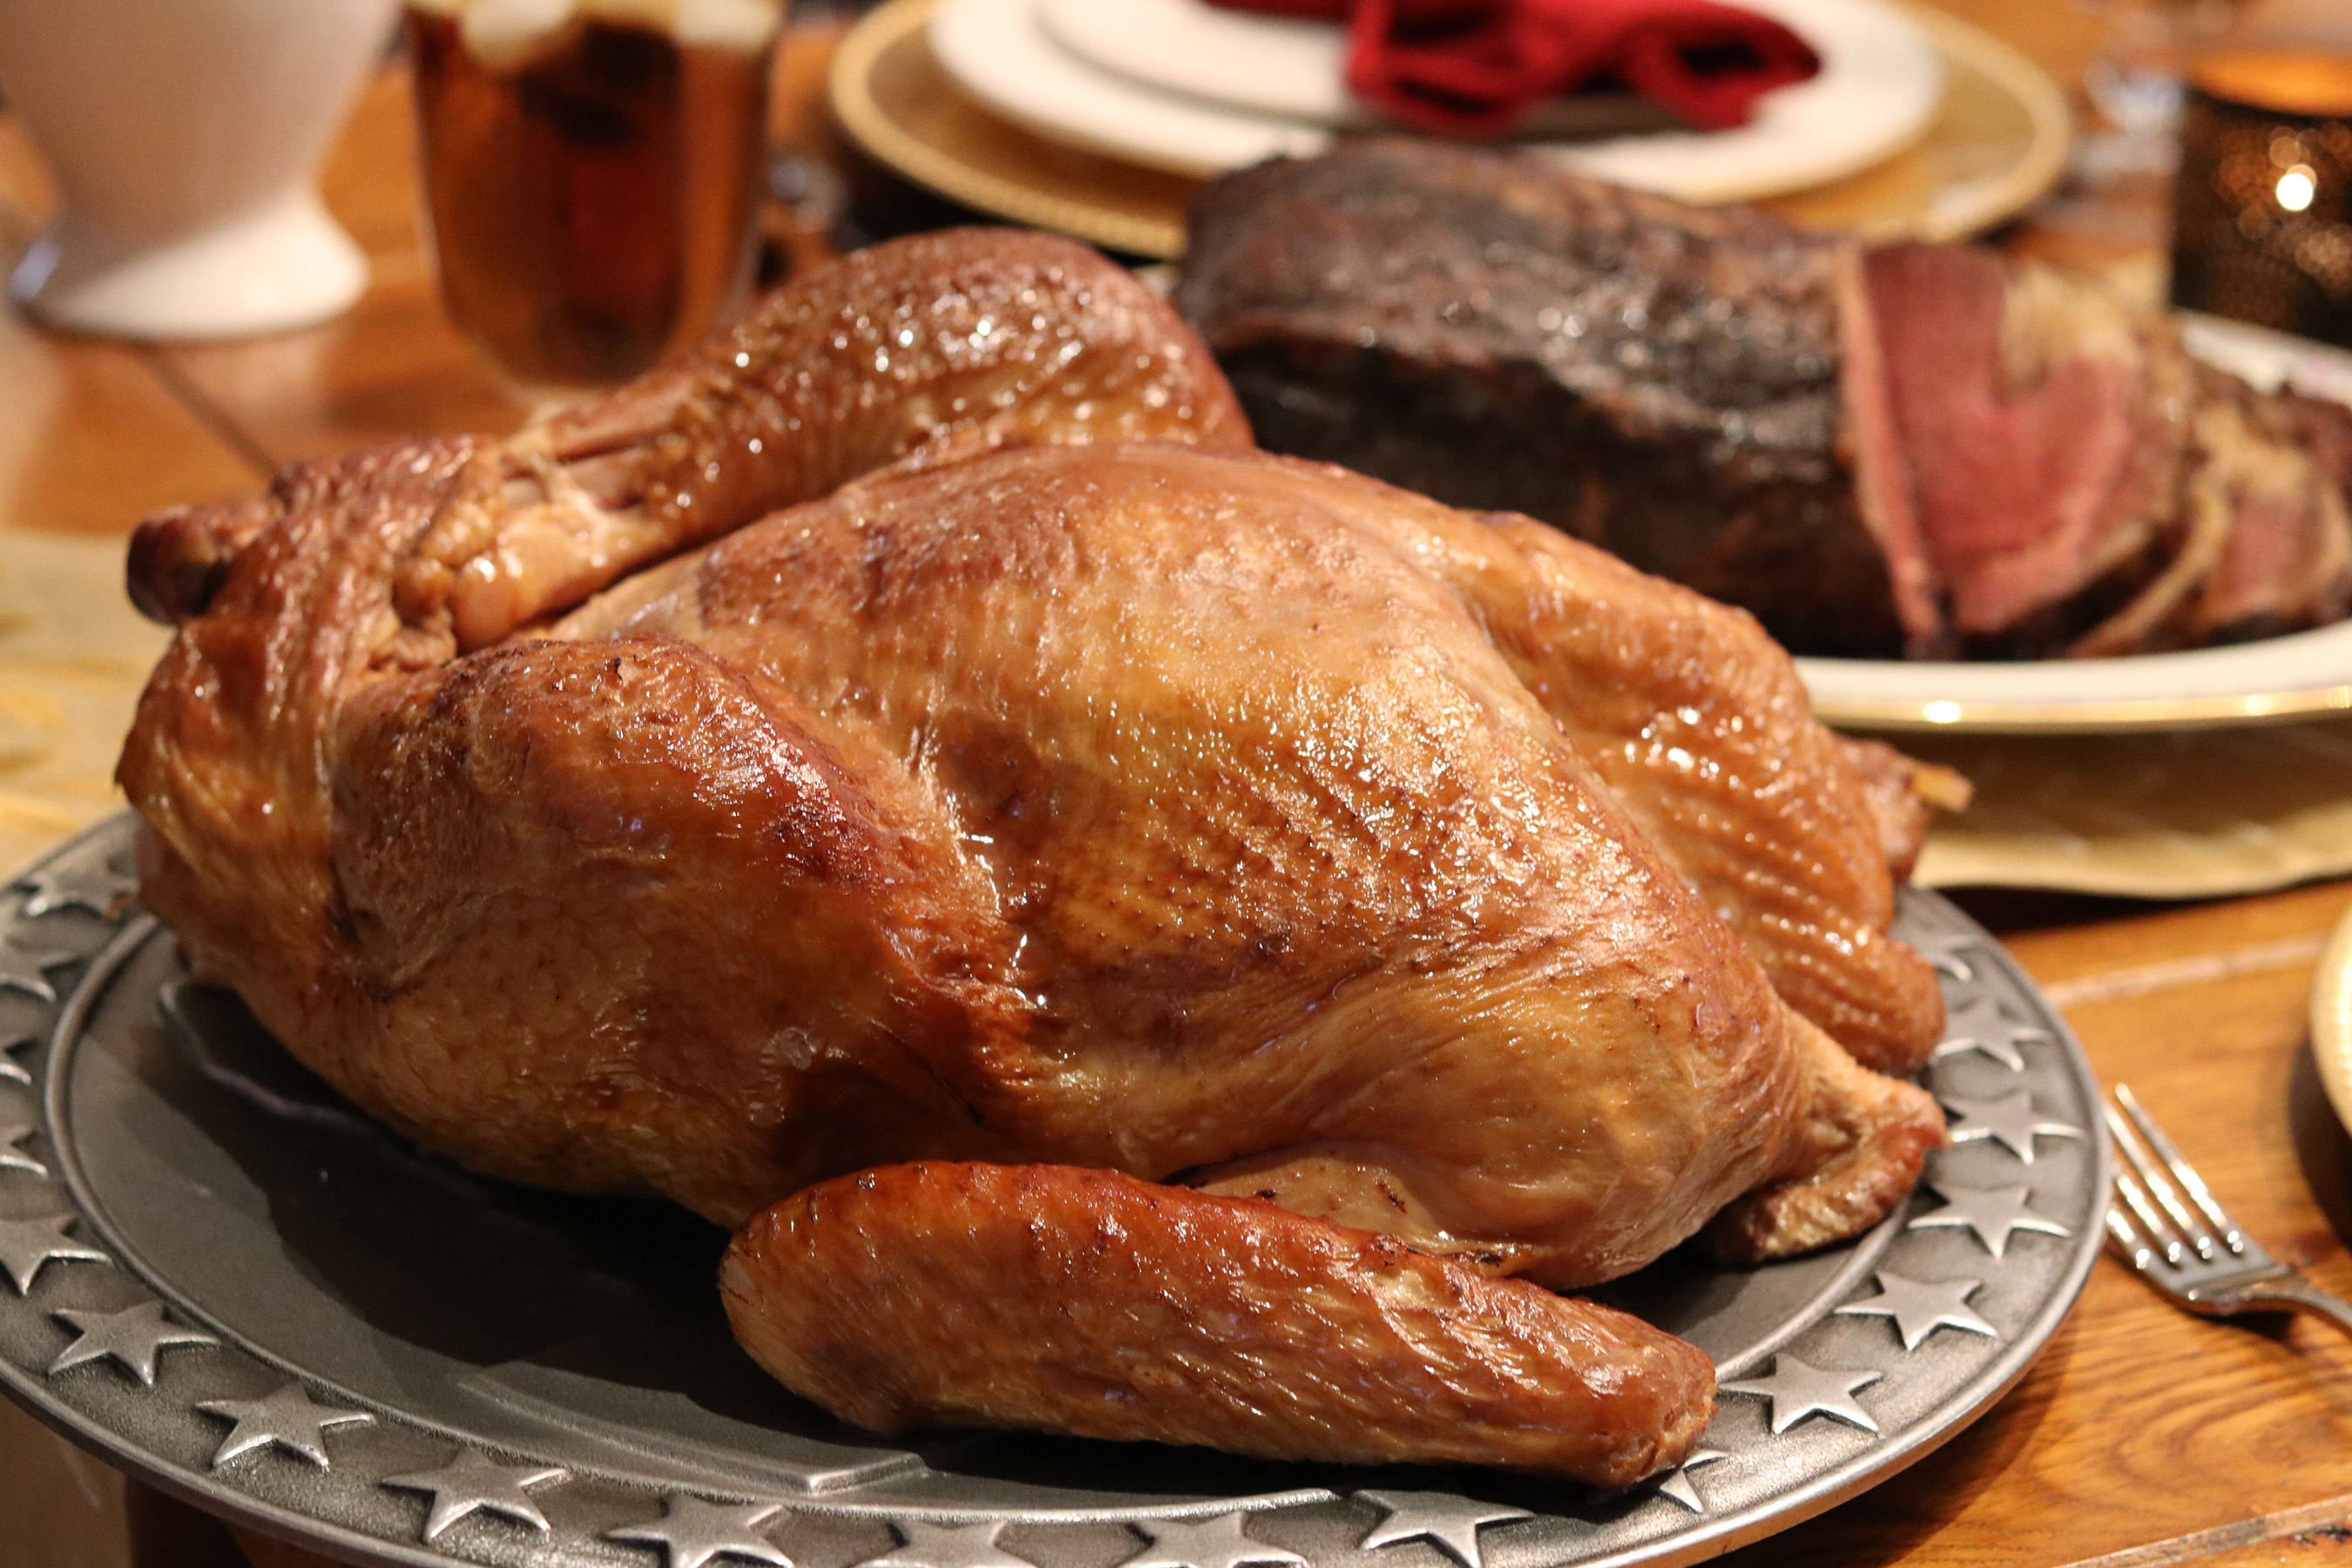 Dickey's offers a selection of juicy meats to choose from this holiday season: Smoked Turkey, Cajun Fried Turkey, Spiral Cut Ham or Prime Rib